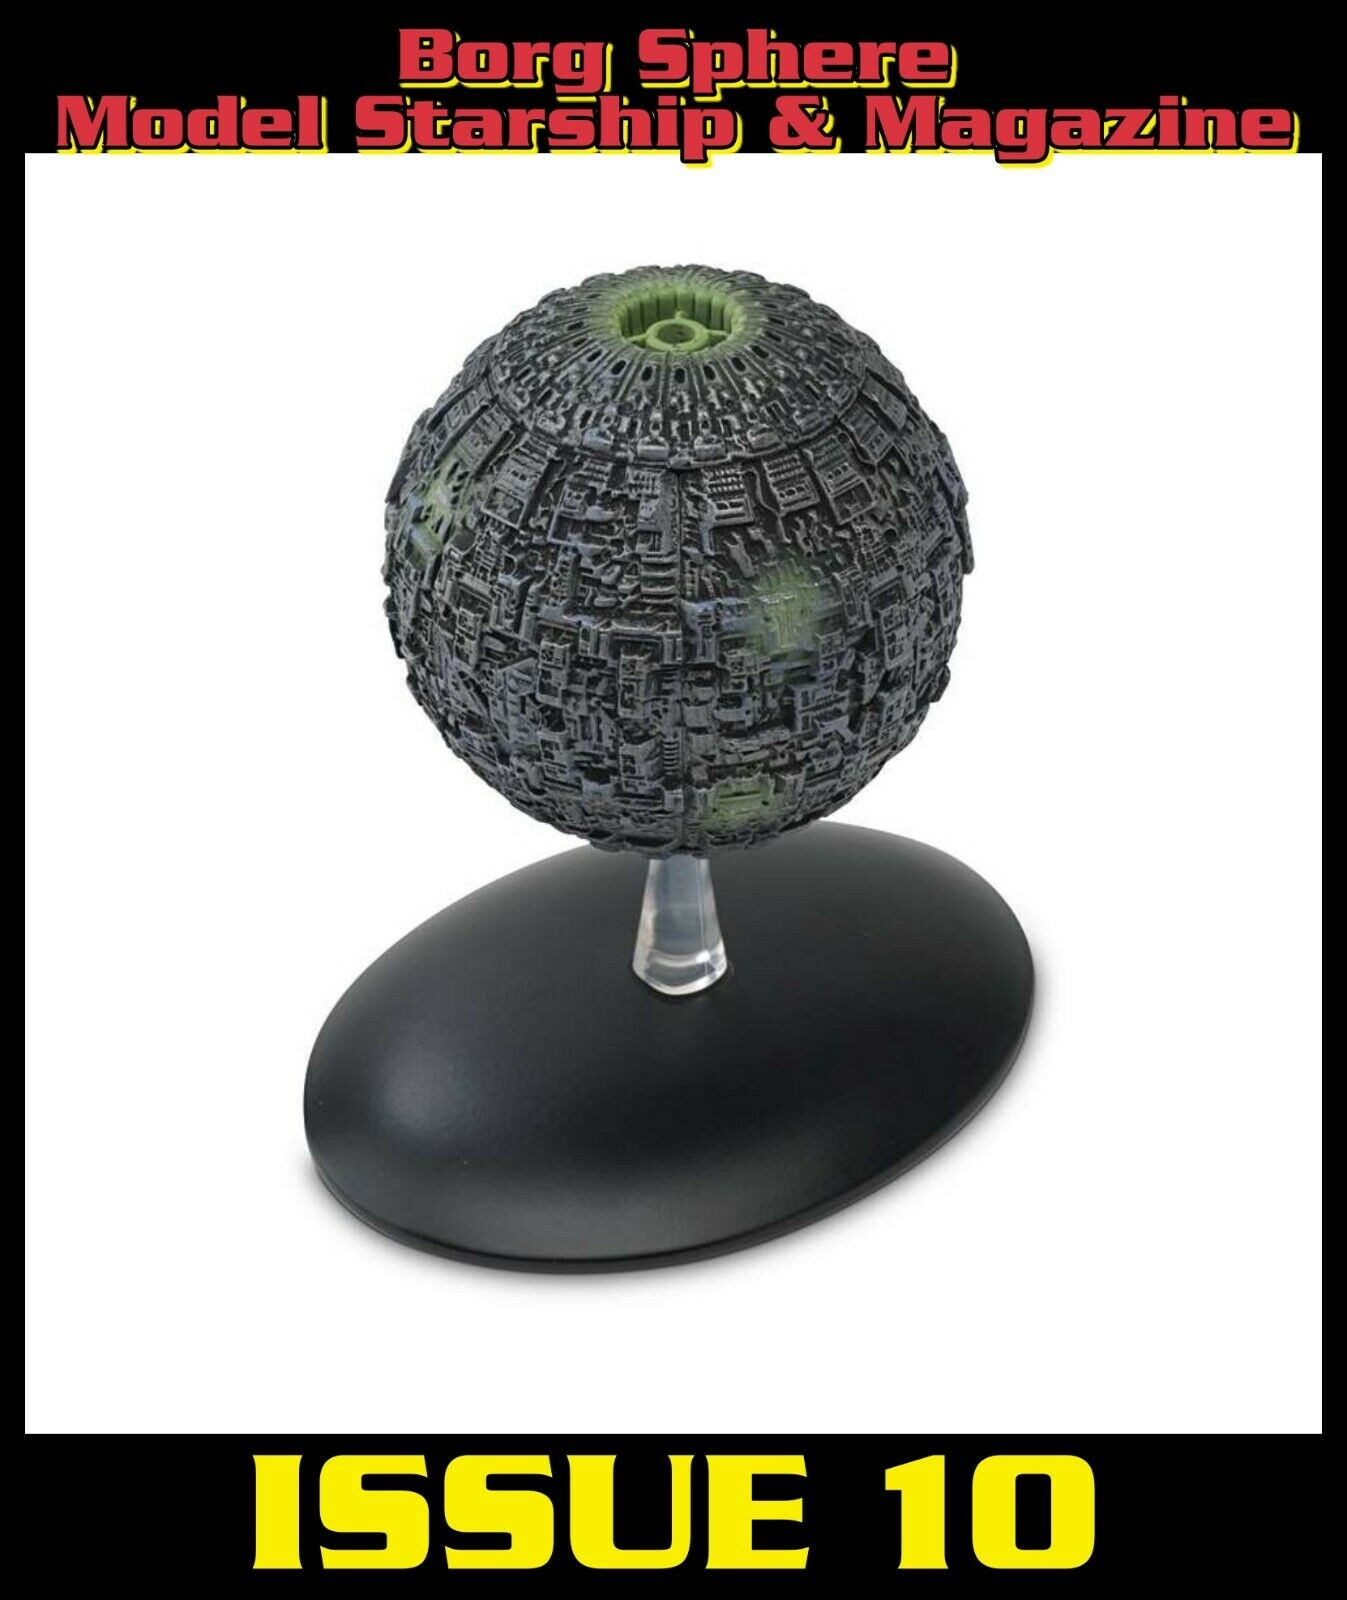 Issue 10: Borg Sphere Ship